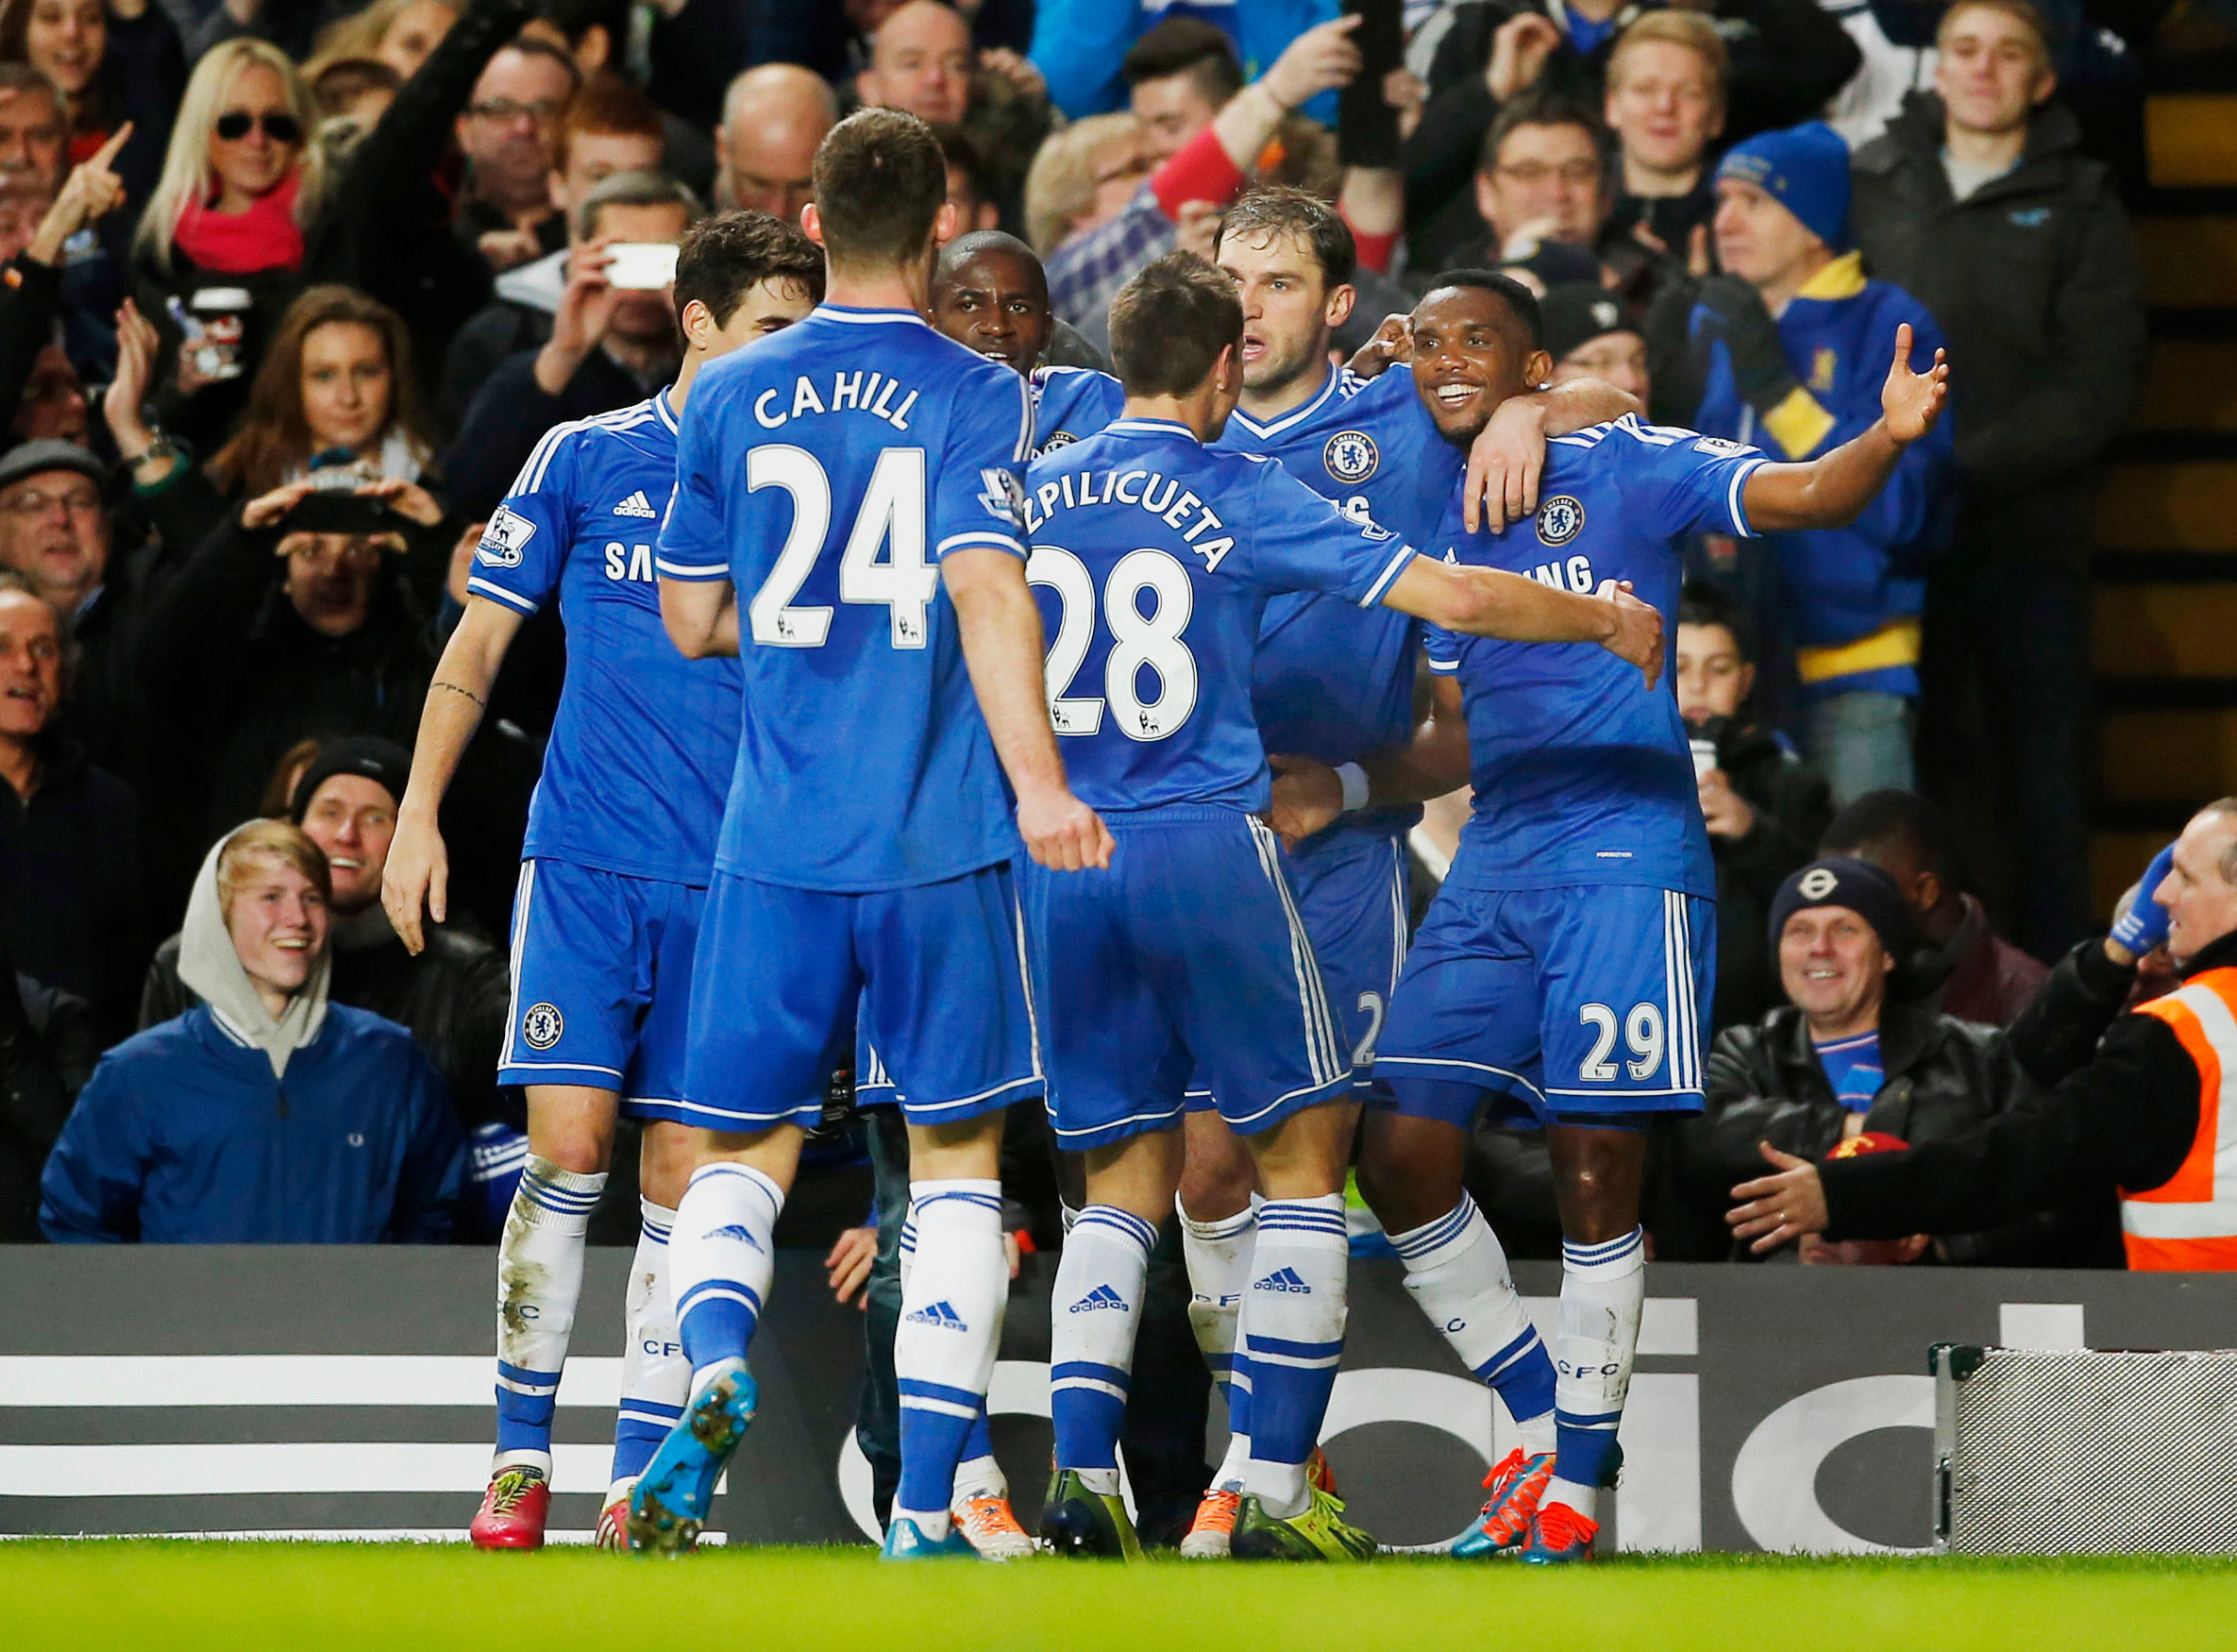 Chelsea 3-1 Manchester United: Key stats and player ratings